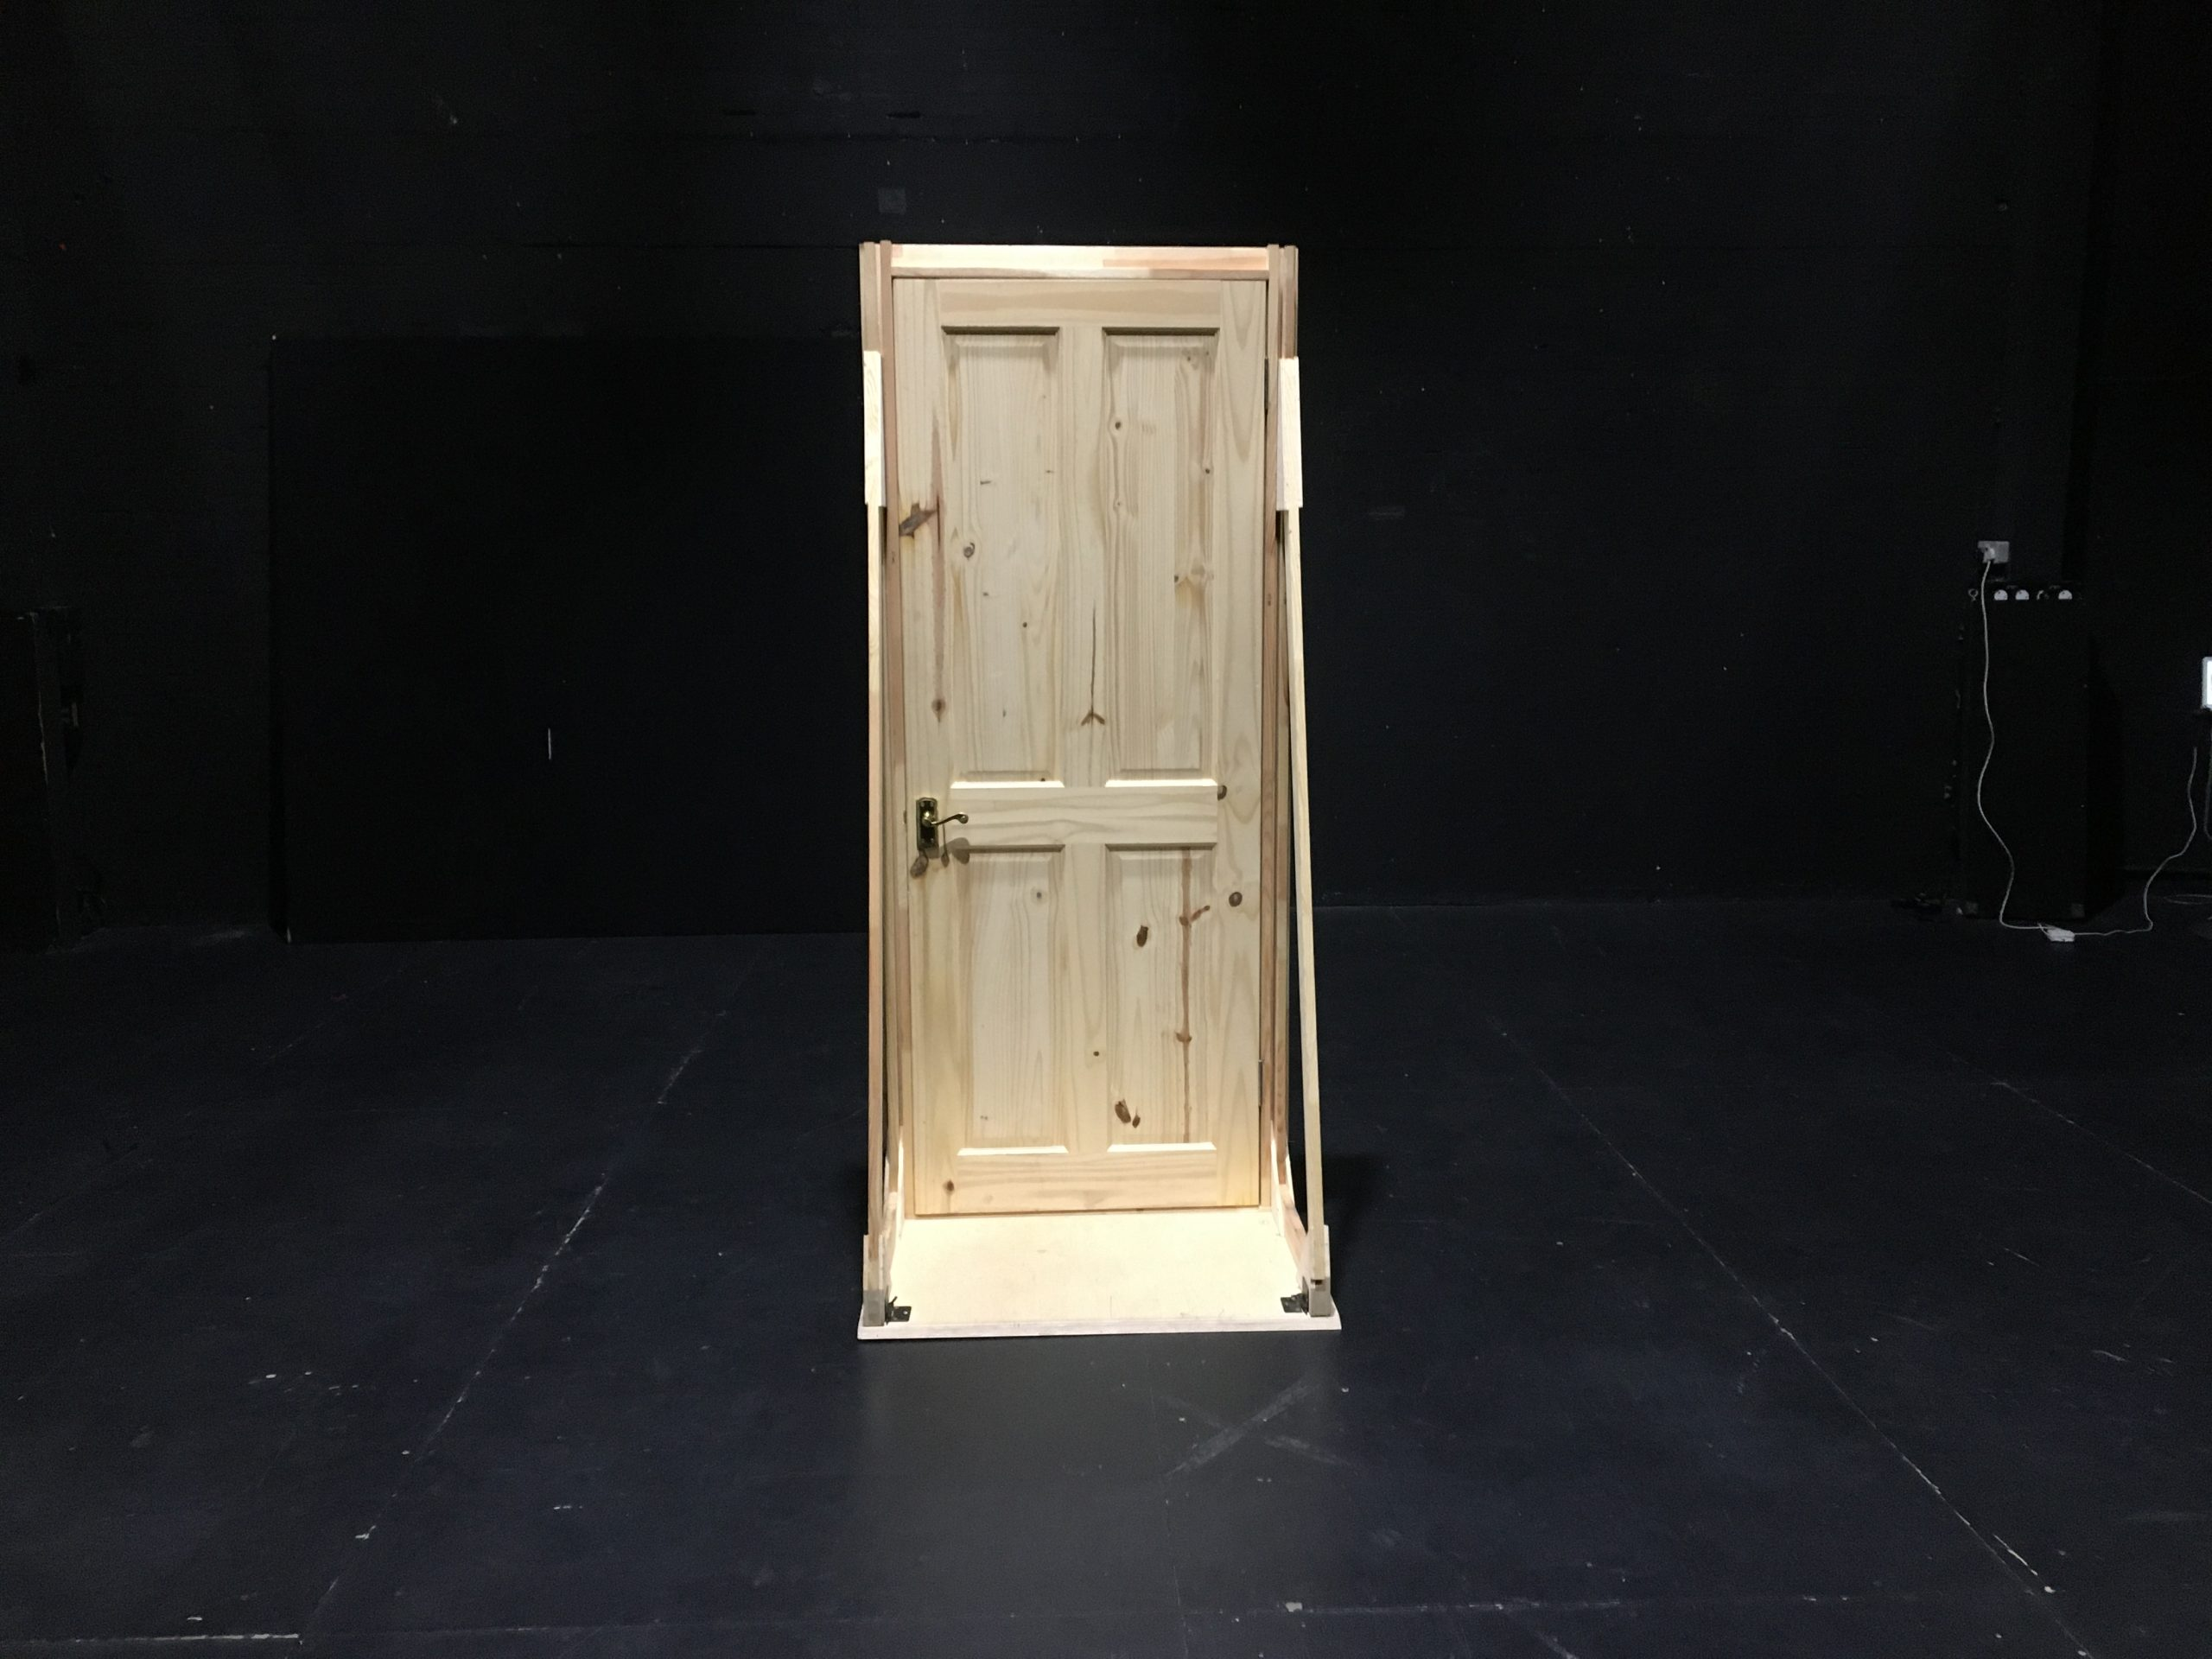 A wooden door in a black room.